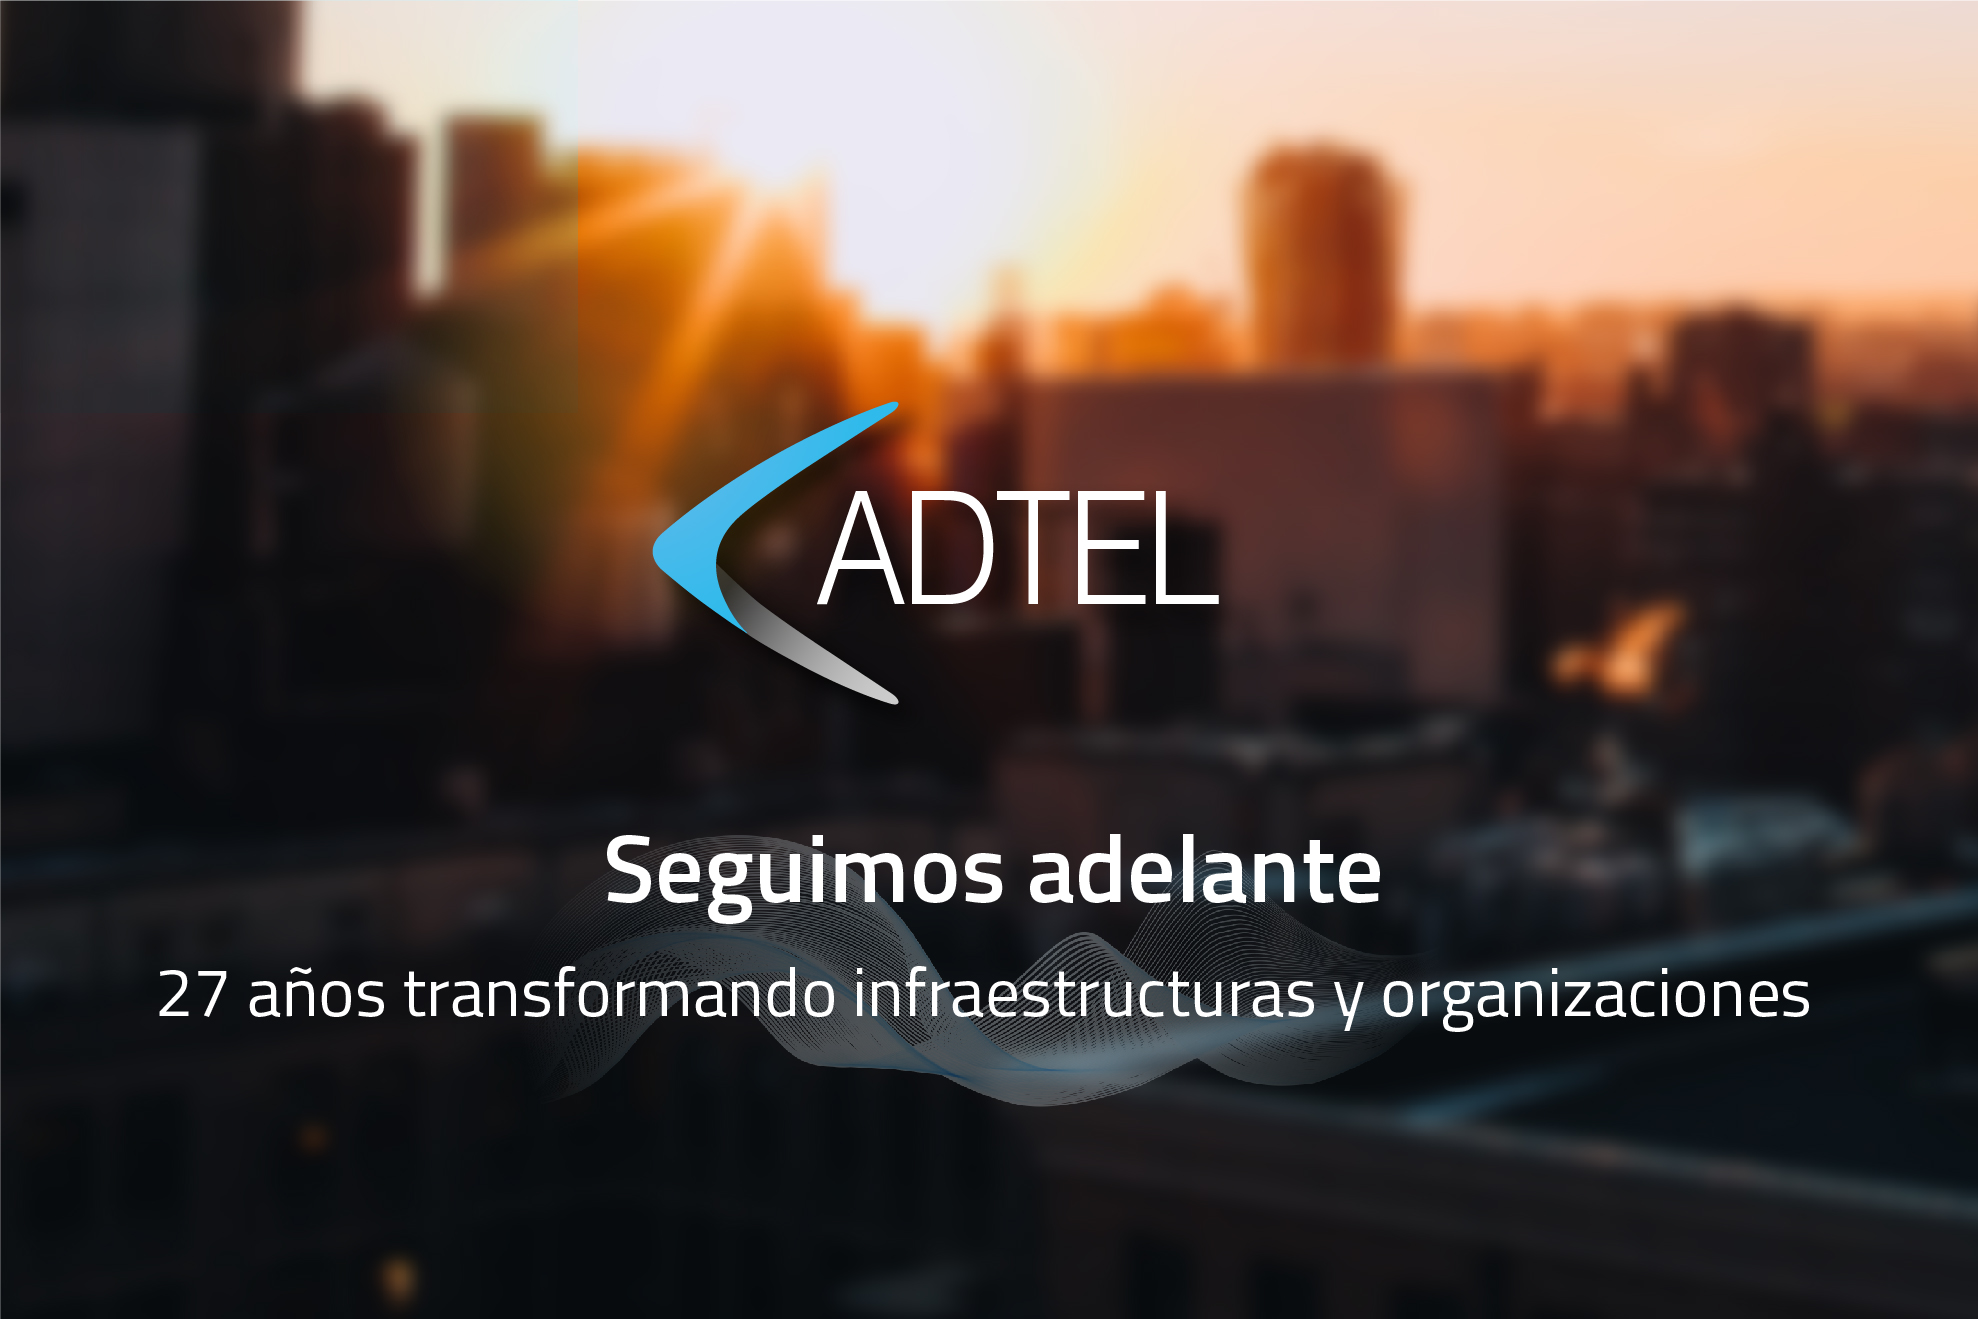 ADTEL celebrates 27 years transformin society with smart technologies